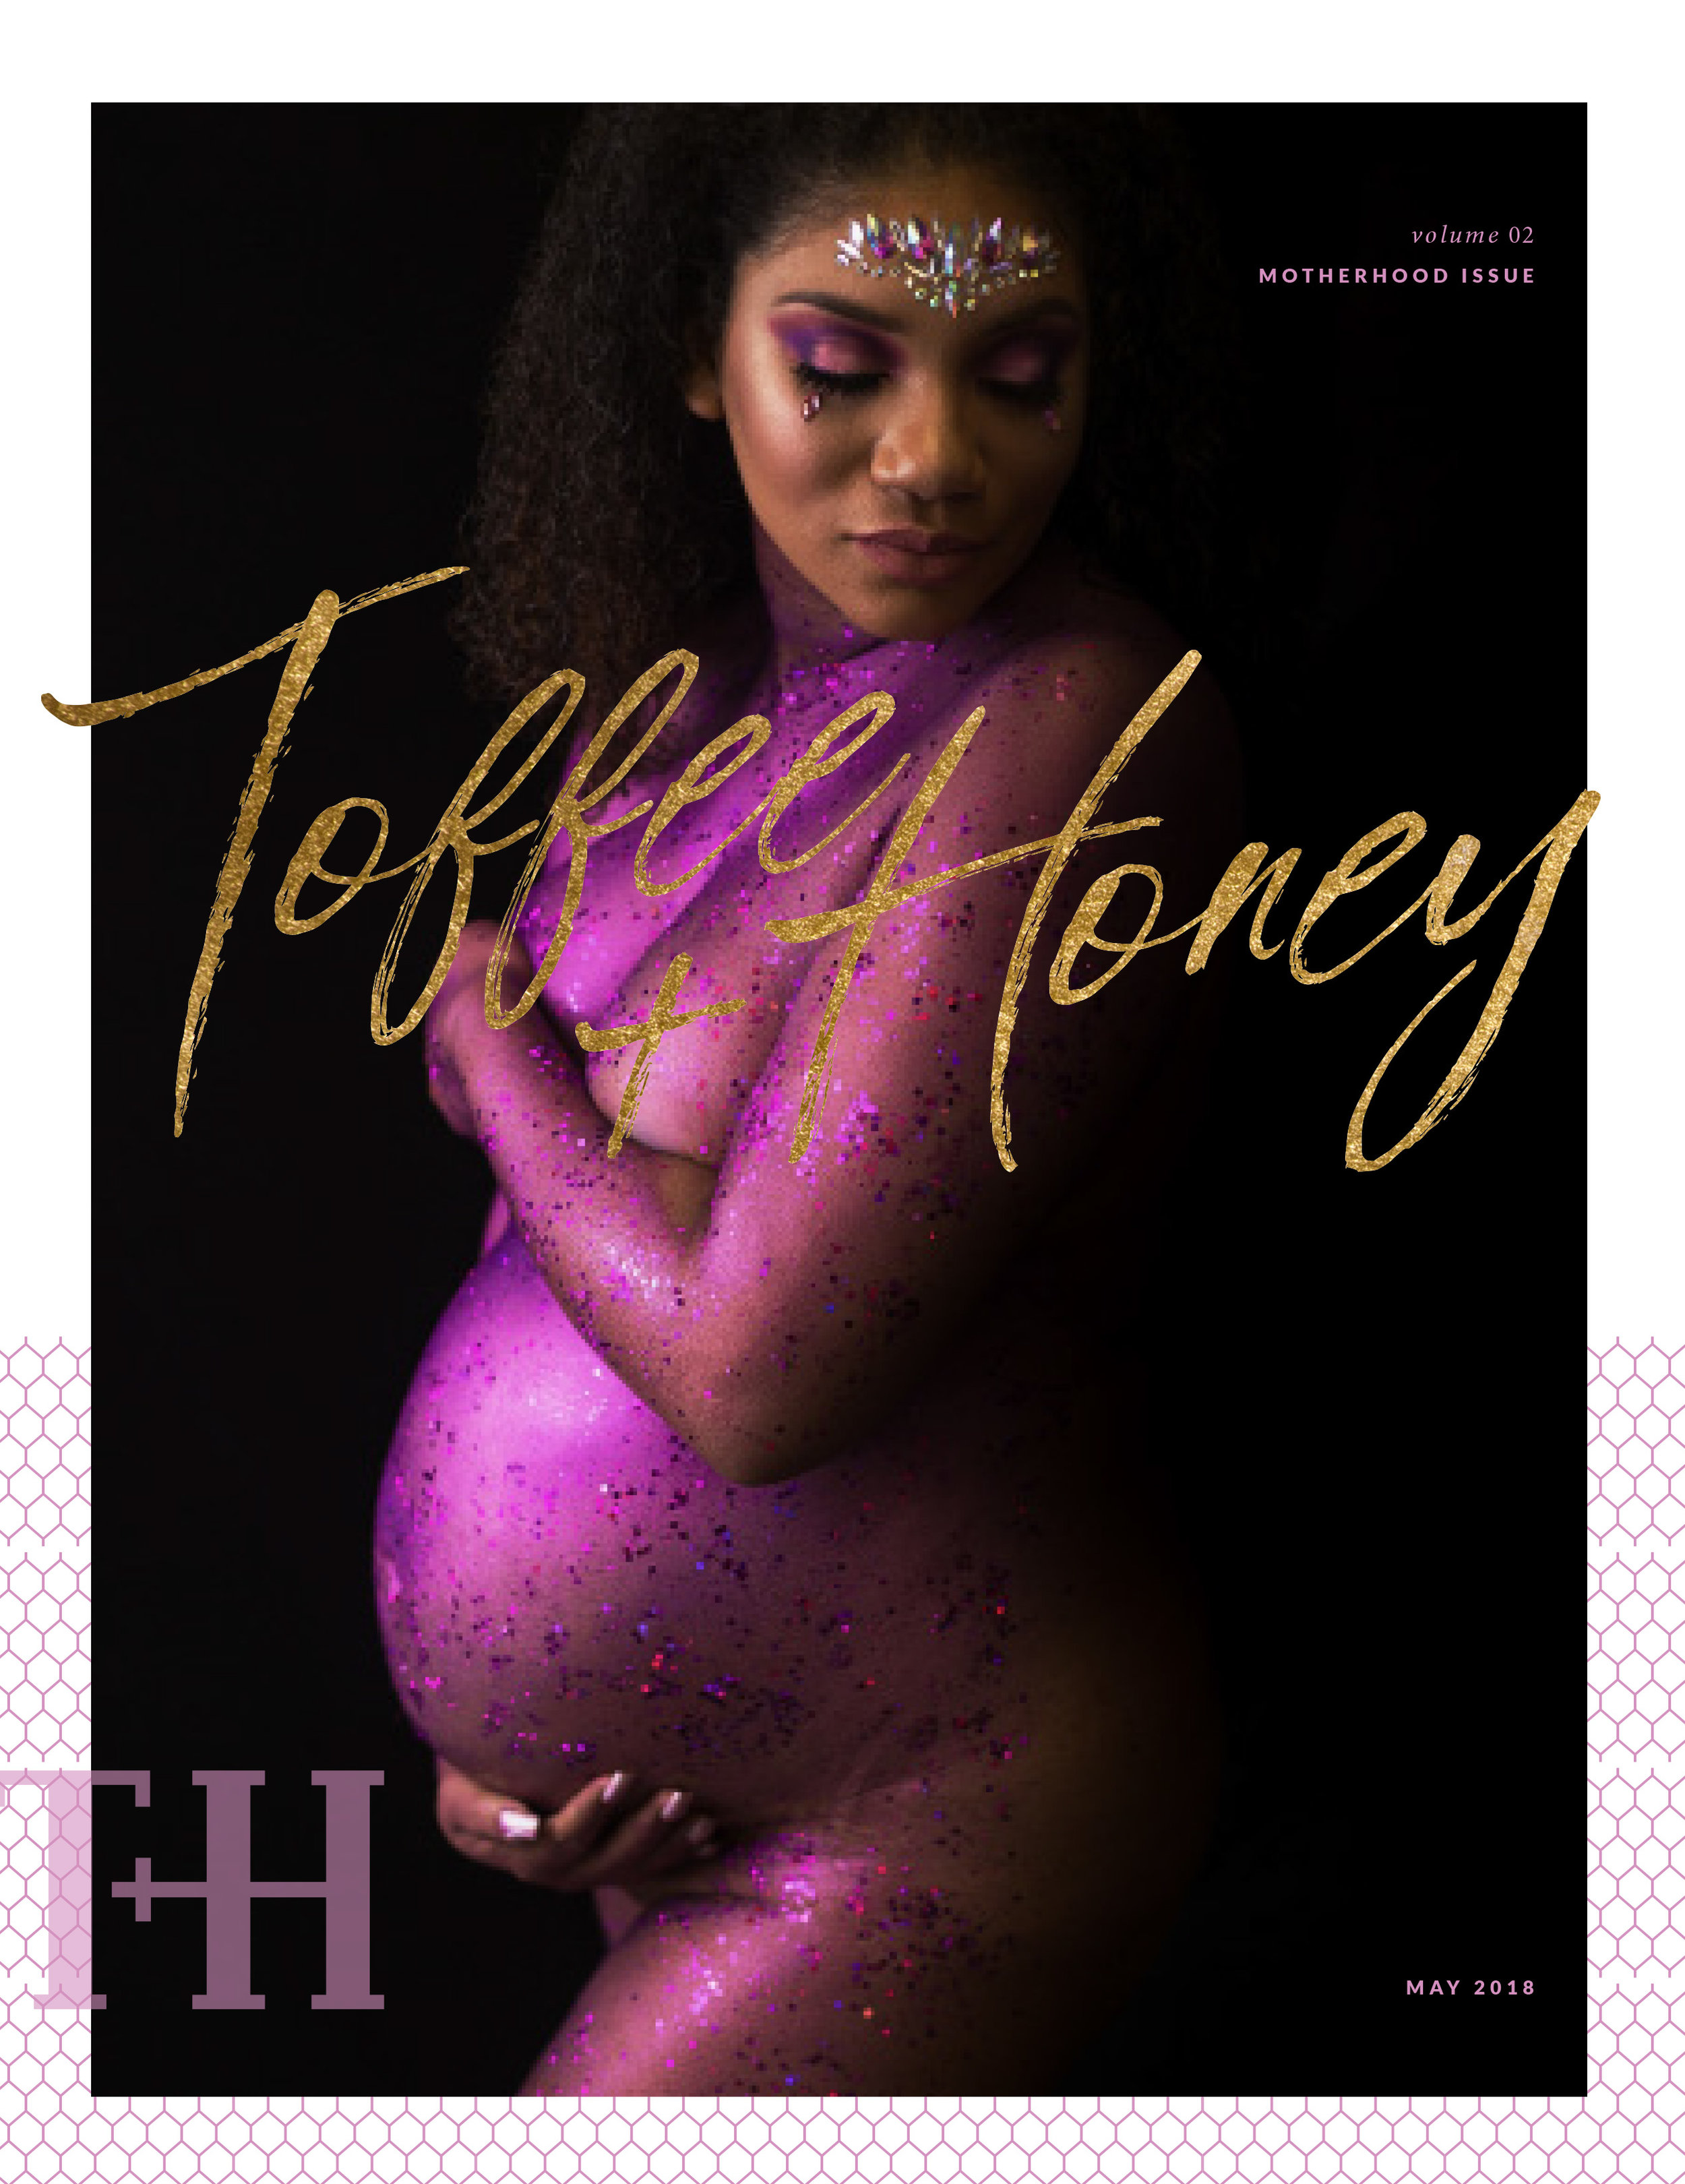 02 May 2018 Toffee Honey Motherhood.jpg